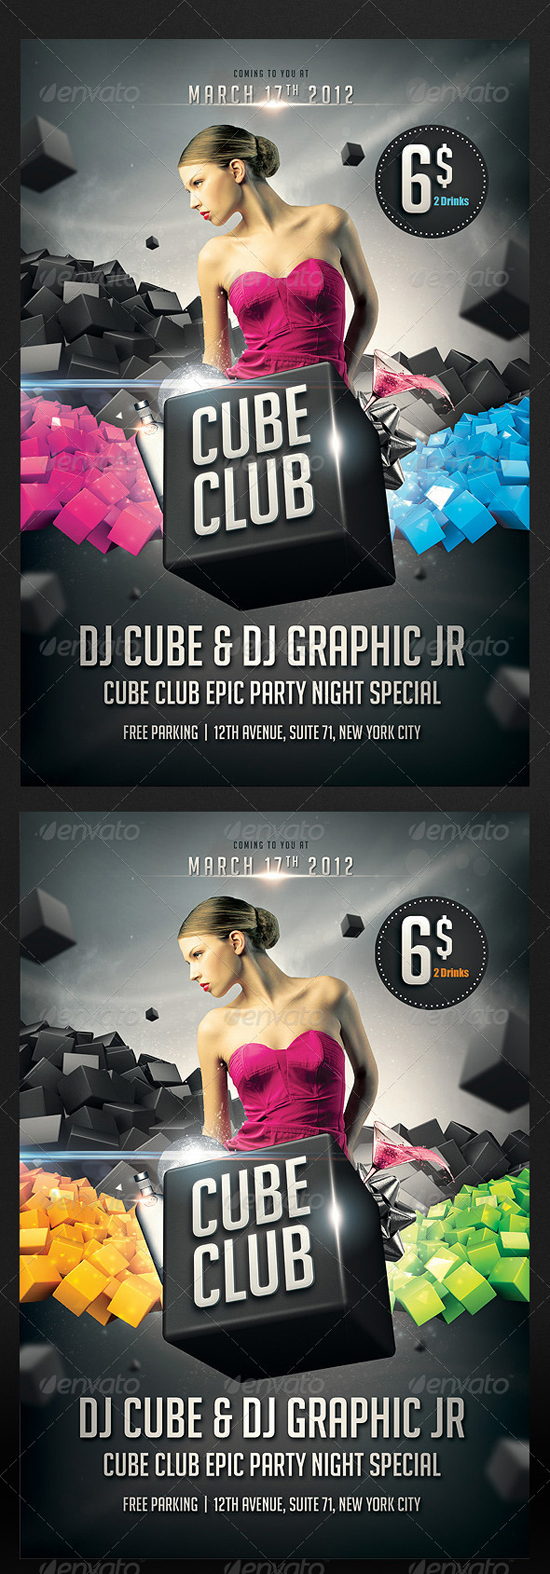 Cube Club Flyer Template